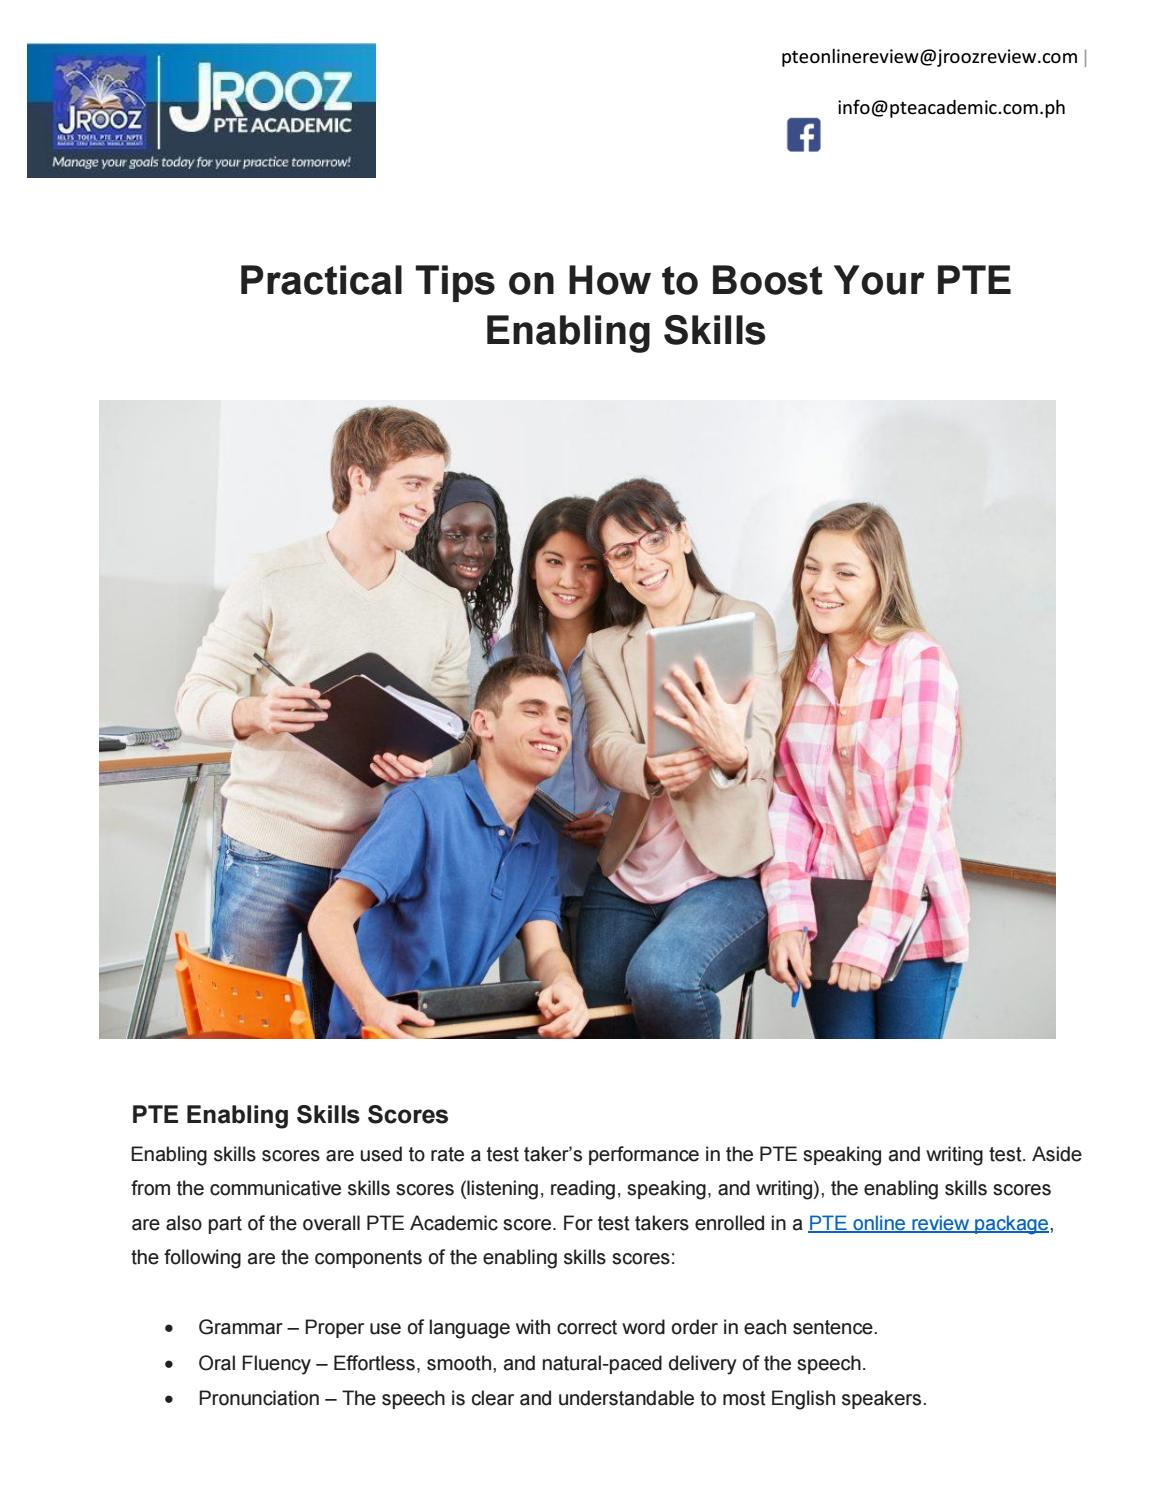 Practical Tips on How to Boost Your PTE Enabling Skills by